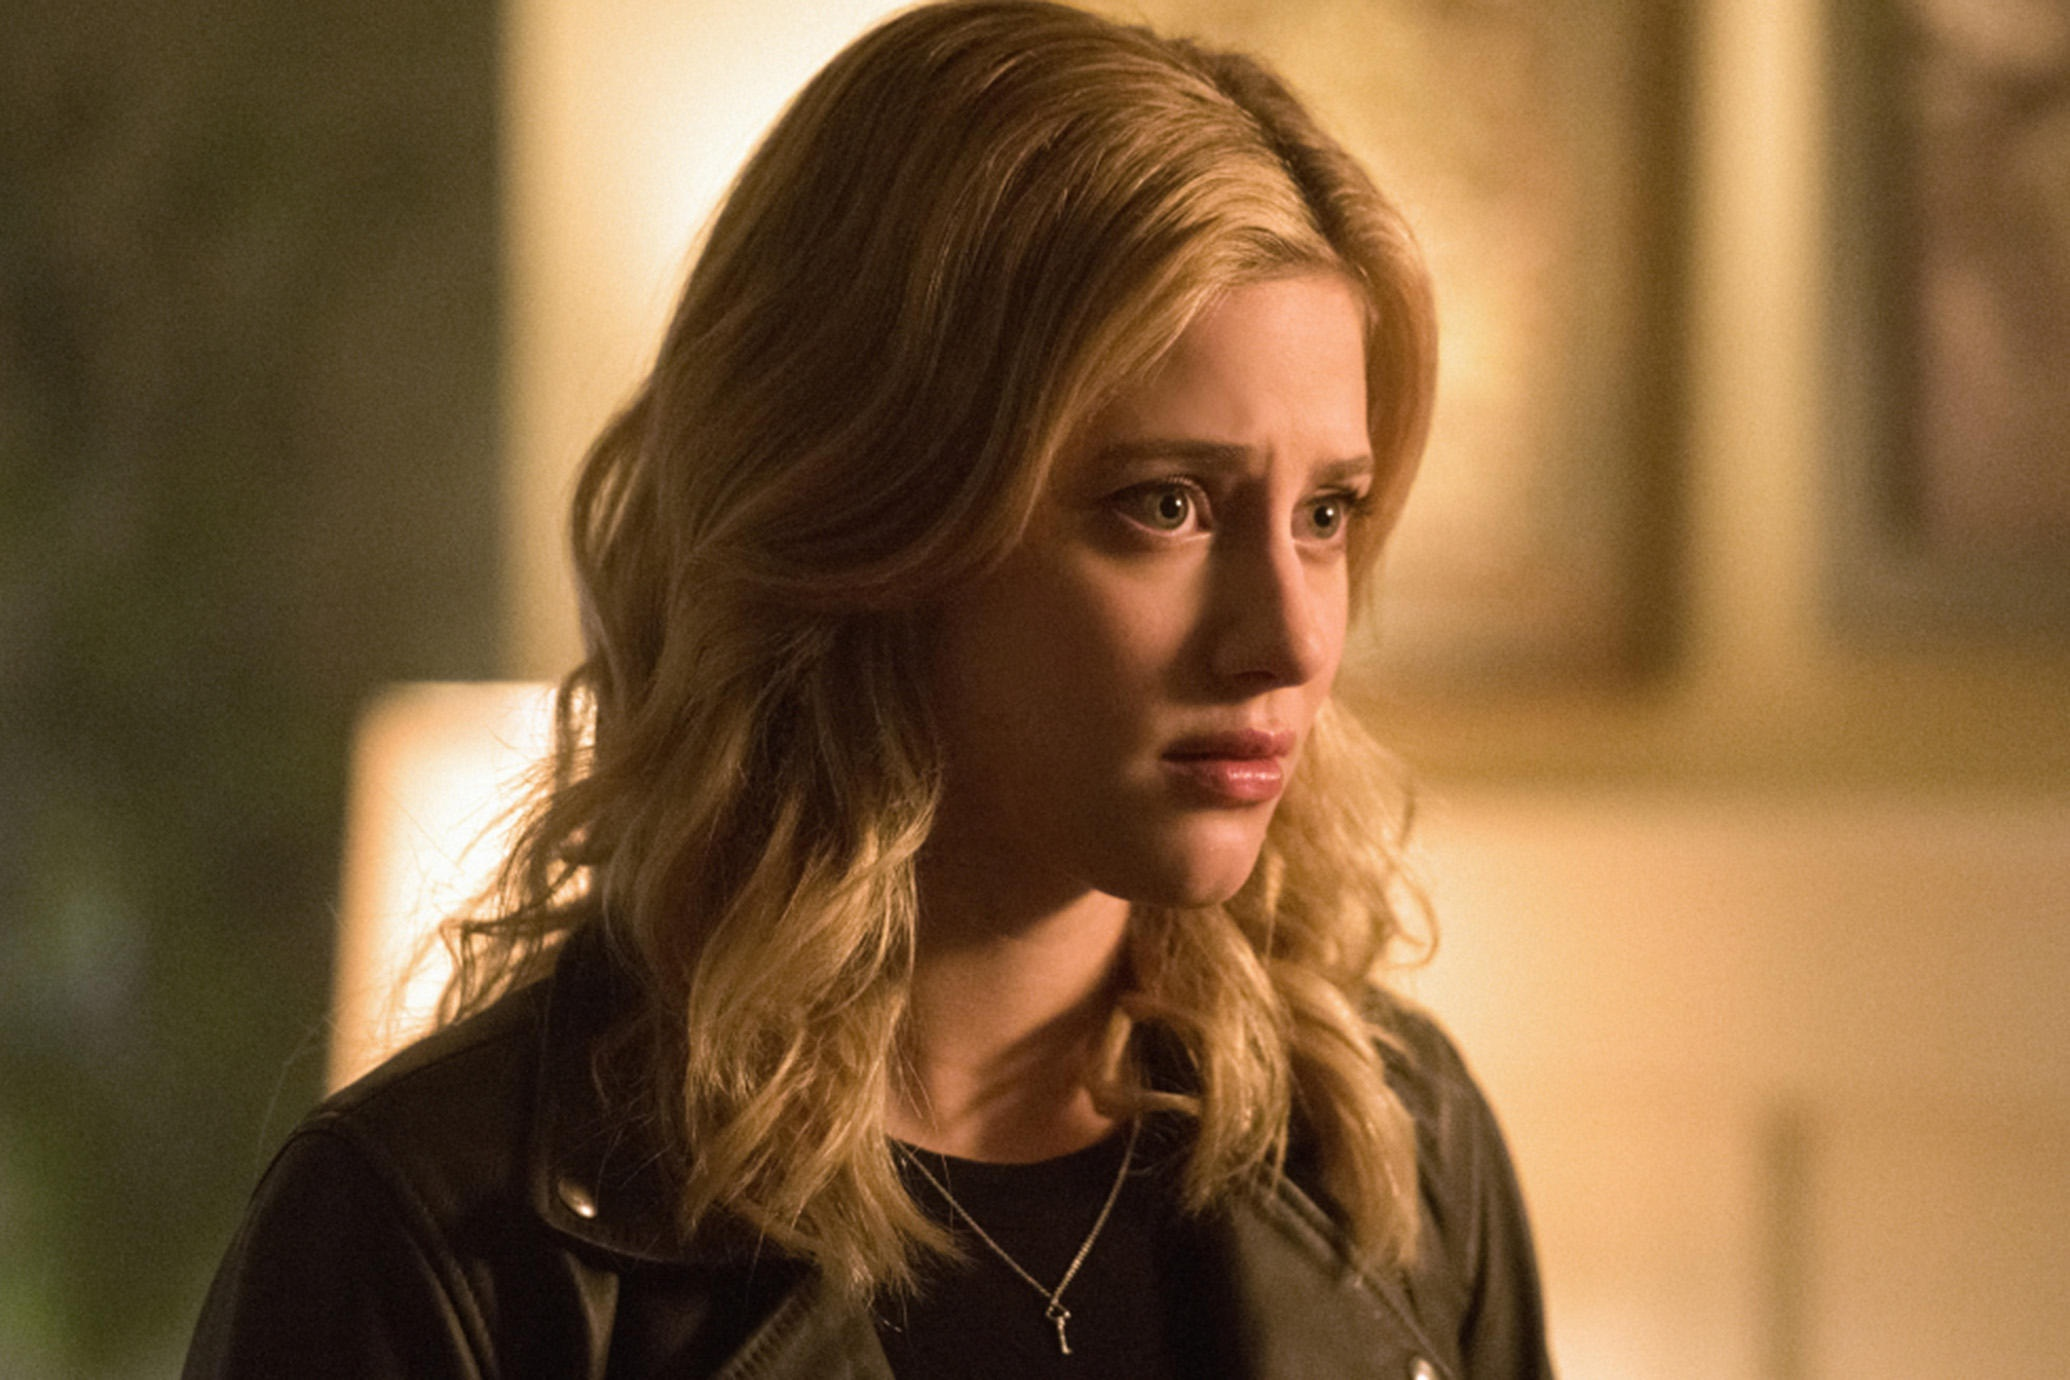 How Lili Reinhart Went From 7-11 Hot Dogs to 'Riverdale' Stardom